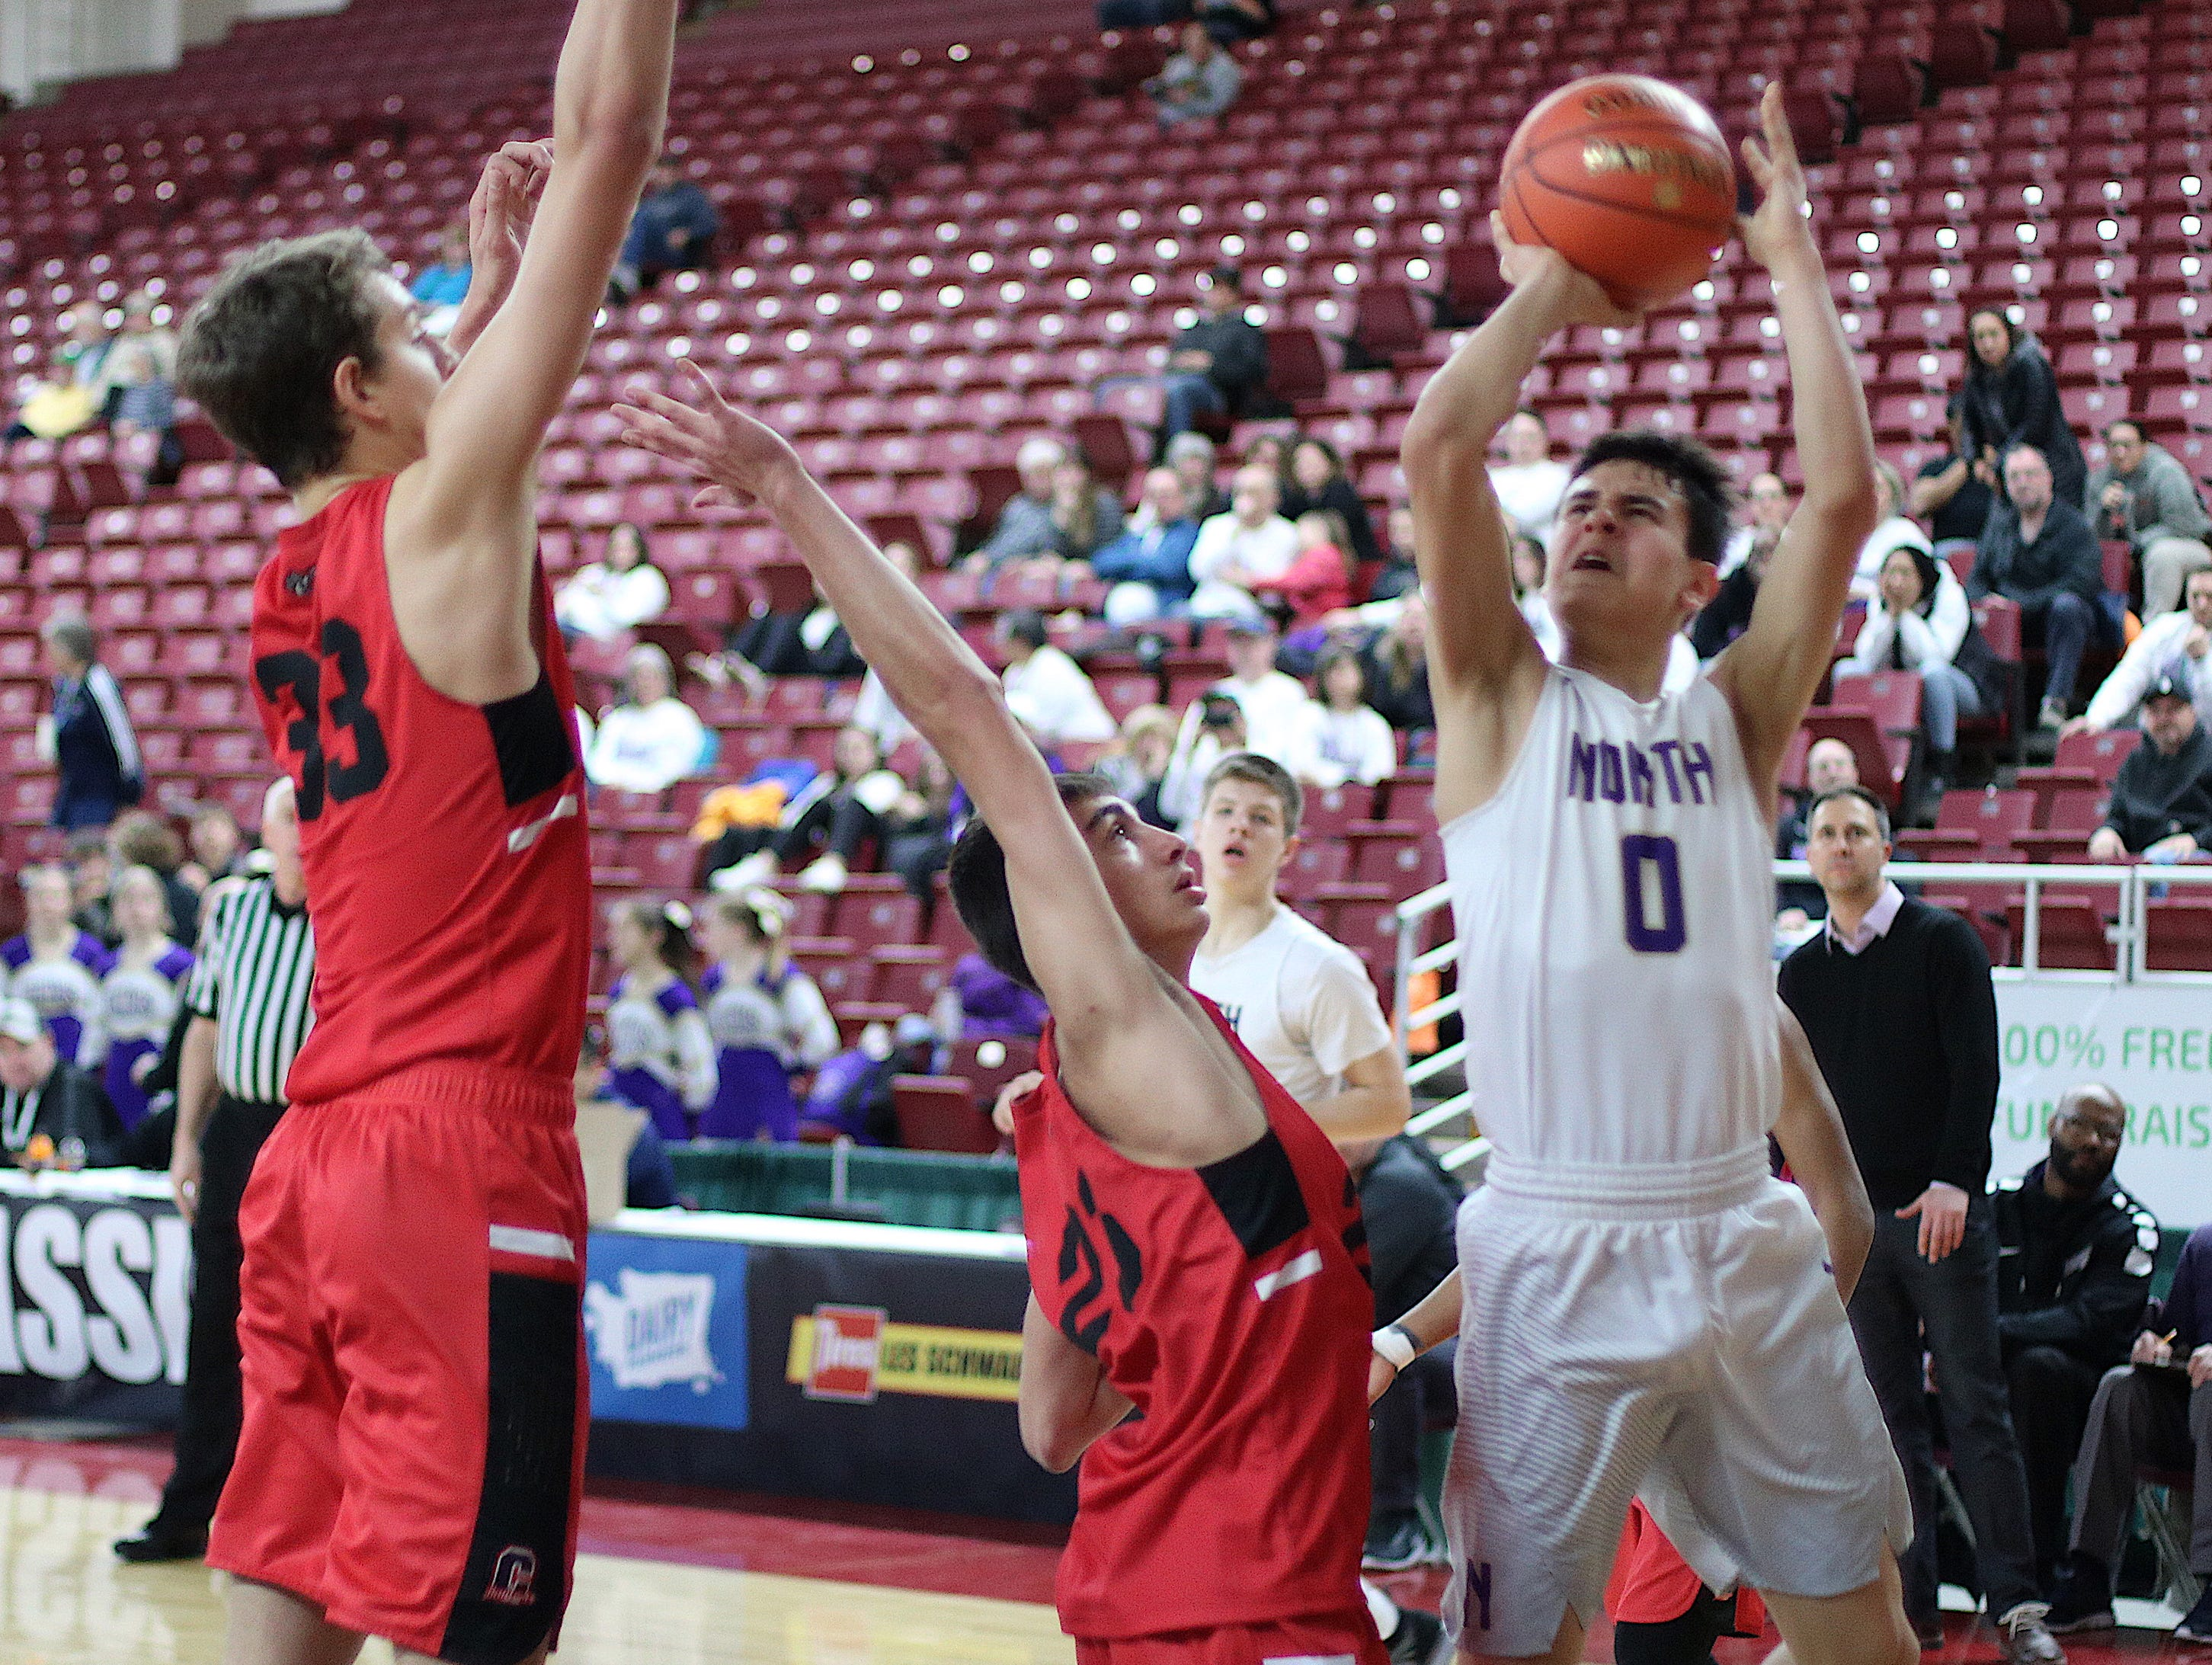 North Kitsap's boys basketball team finished sixth at the Class 2A state tournament Saturday after falling 50-32 against Clarkston.